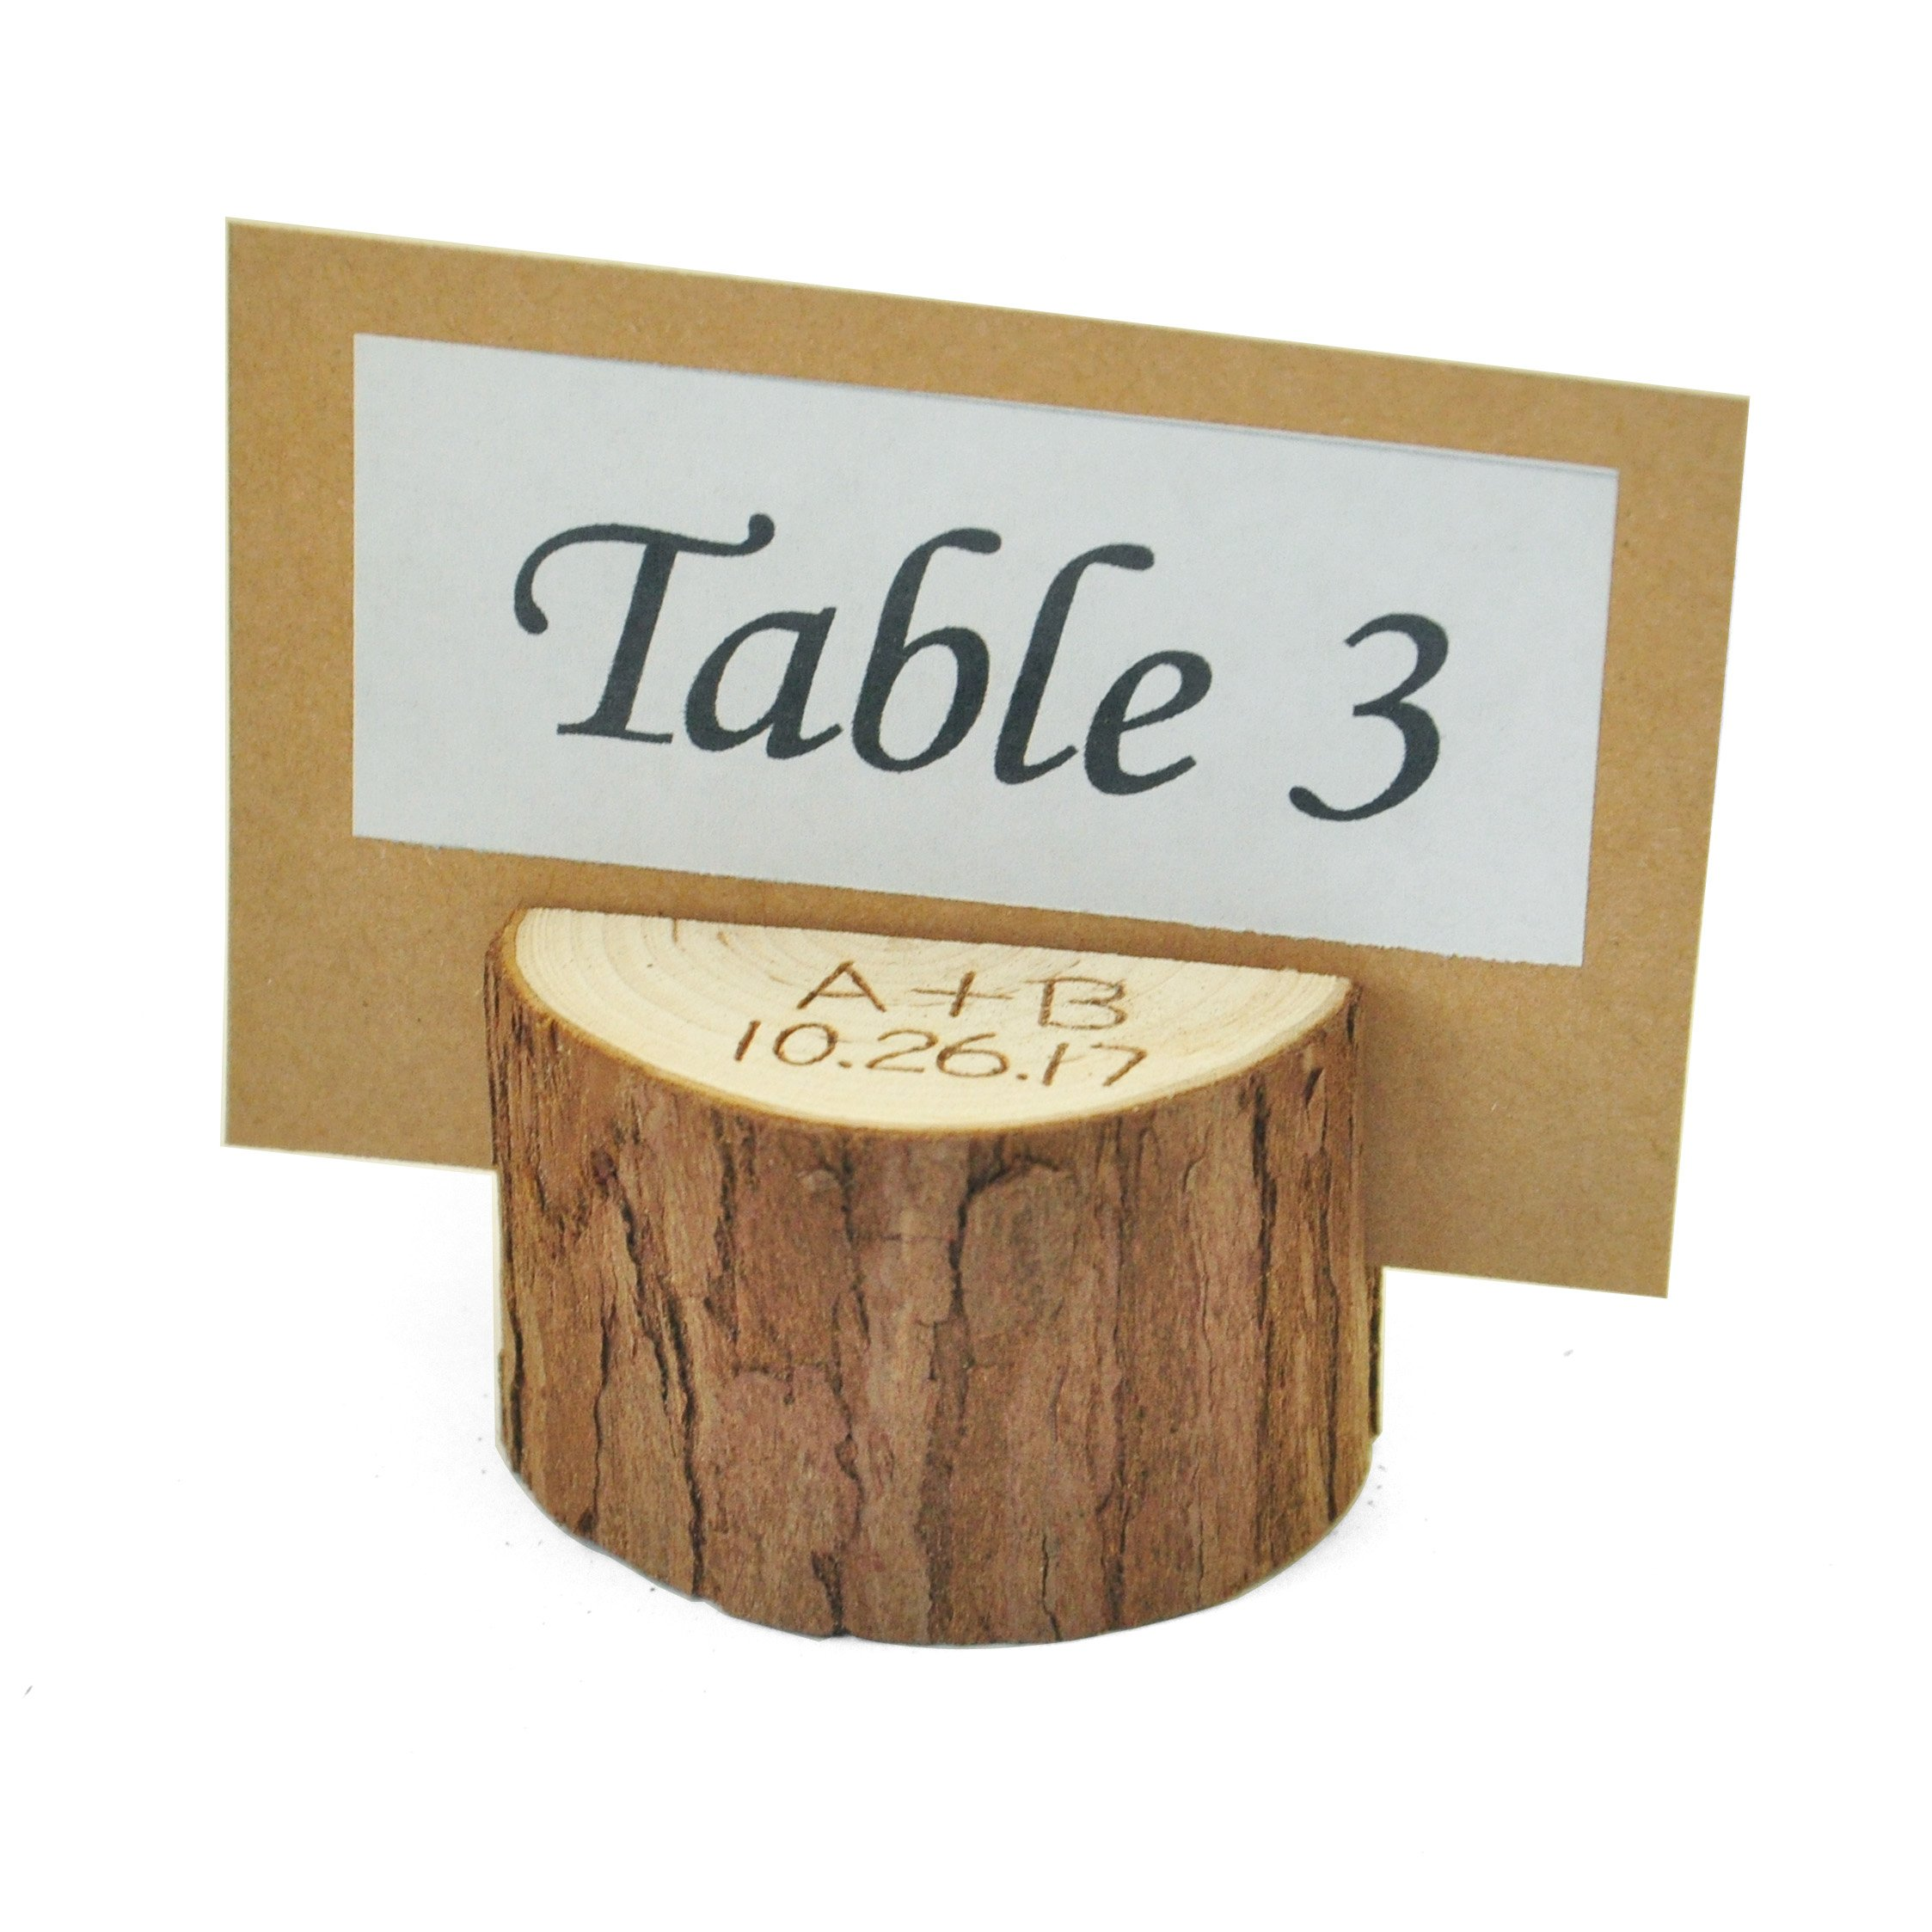 Set of 10 Personalized Wood Table Number Holder,Table Number 1-10 Holder,Wedding place card holder,Rustic table Party decor by ZXB JEWELRY (Image #5)